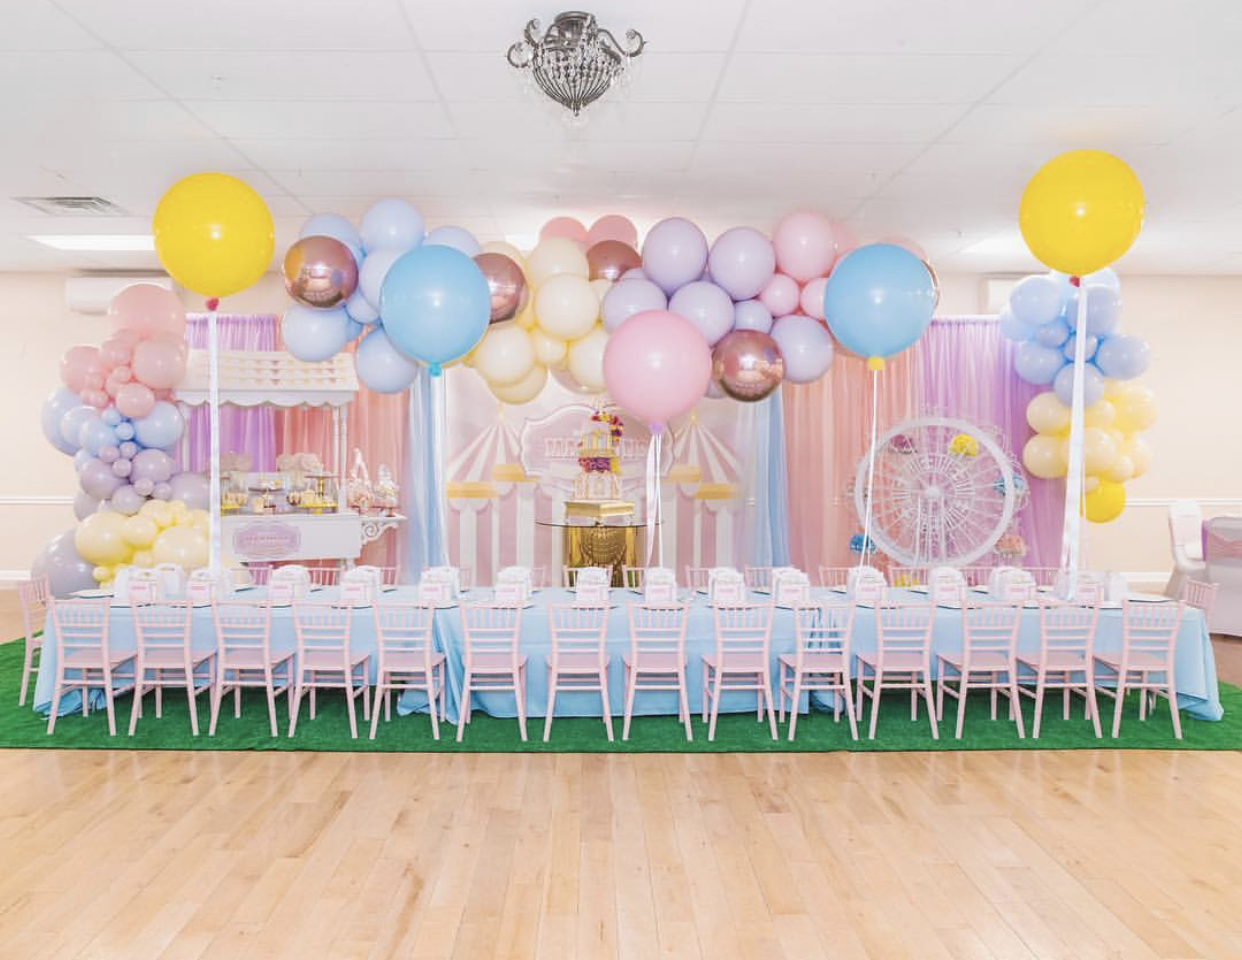 Source It:  •Cake and Desserts @jenn_cakes @mell_cakes •Backdrop, custom decals, and signs @nine26design  •Balloons @indie_bee_balloons   •Event props @big.mamas.party.rentals  •Kids chairs and tables @petiteseats •Photography by @purroy_photo_video